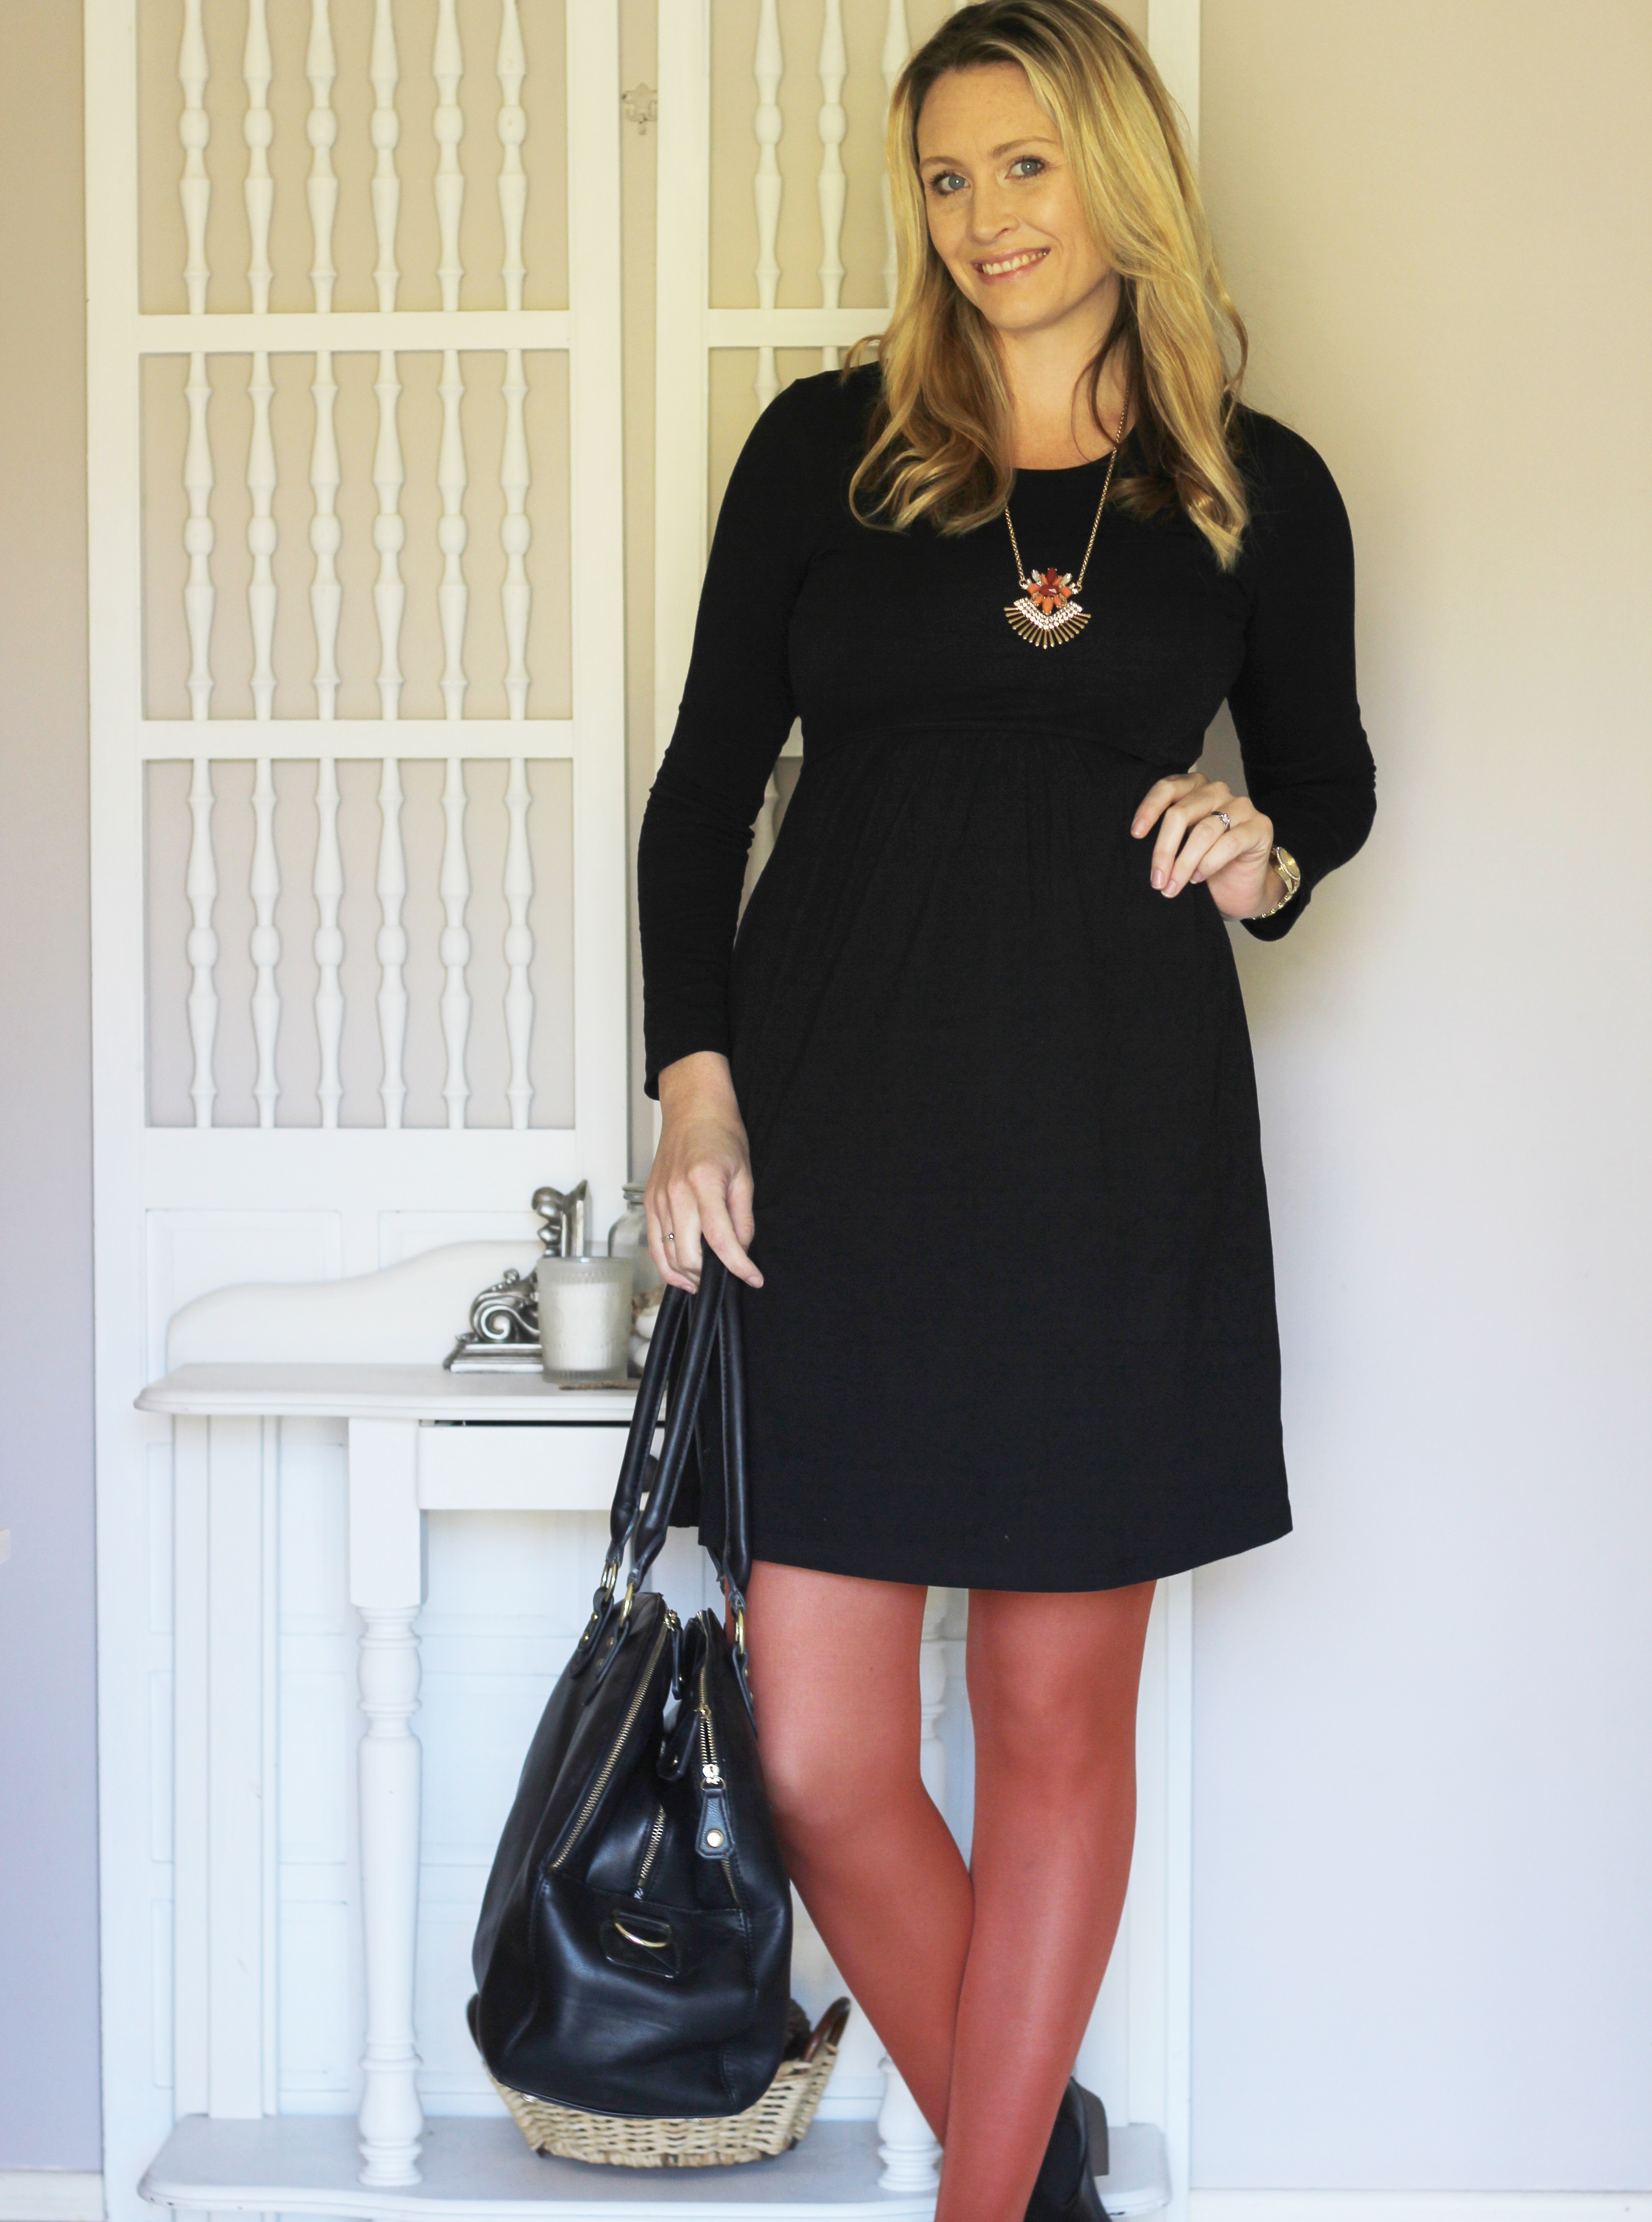 The dress access - I Recently Realised I Ve Really Missed Wearing Dresses It S Near Impossible To Breastfeed In Most Regular Dresses You Either Have To Hoist Them Up